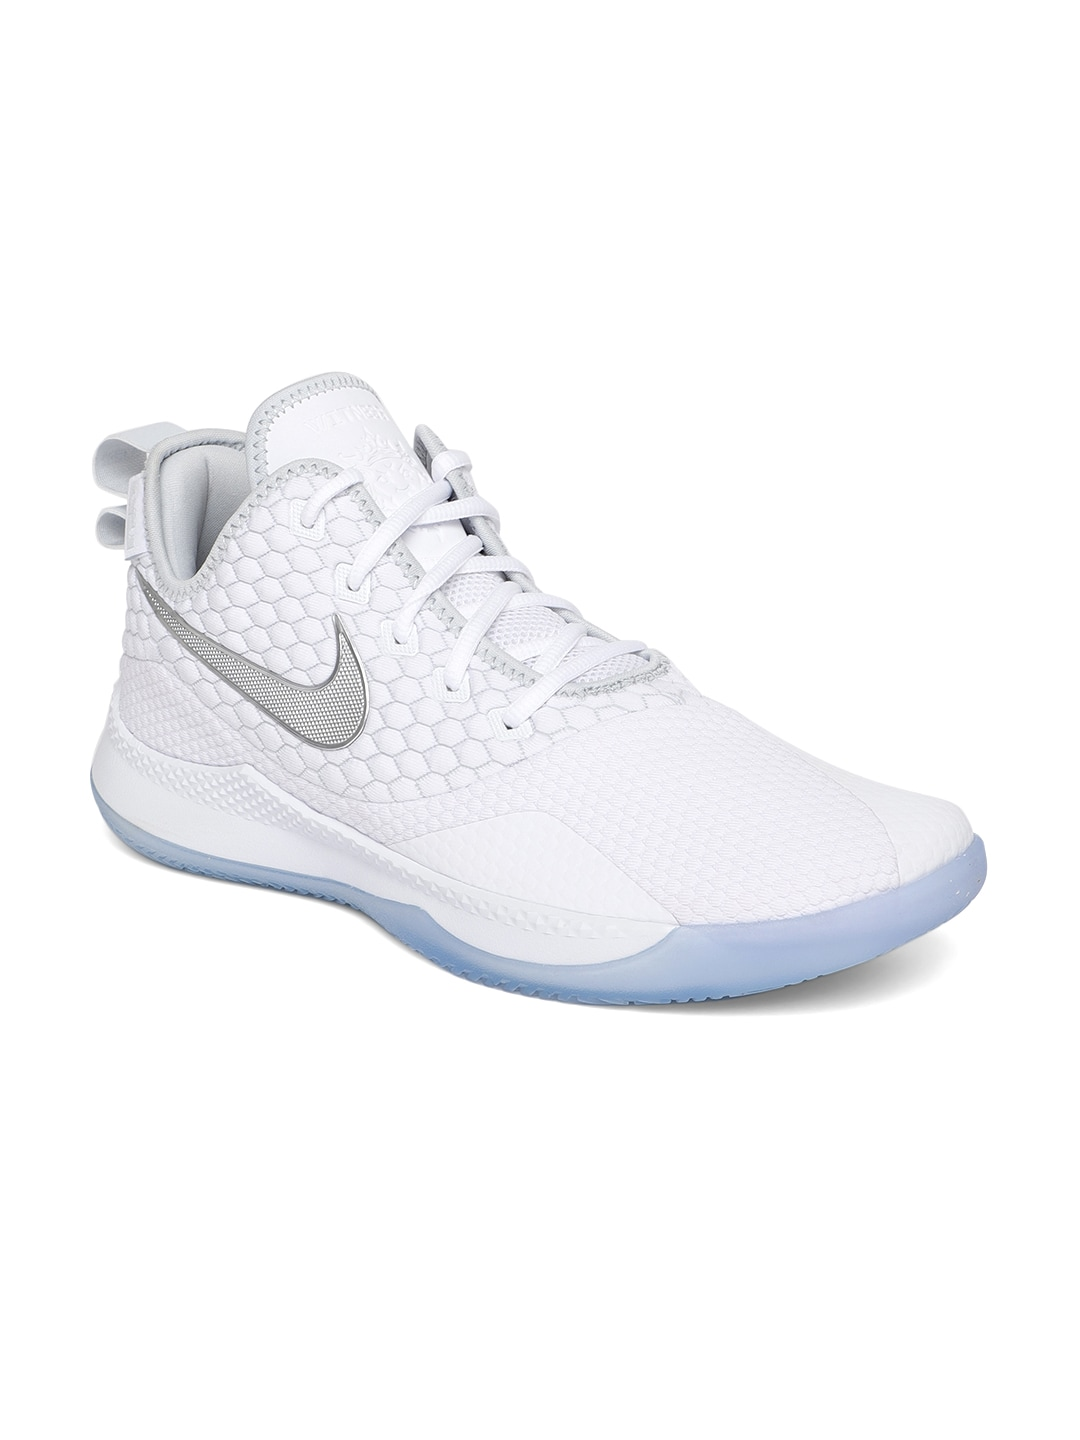 6eb1e6e313d4 Basket Ball Shoes - Buy Basket Ball Shoes Online